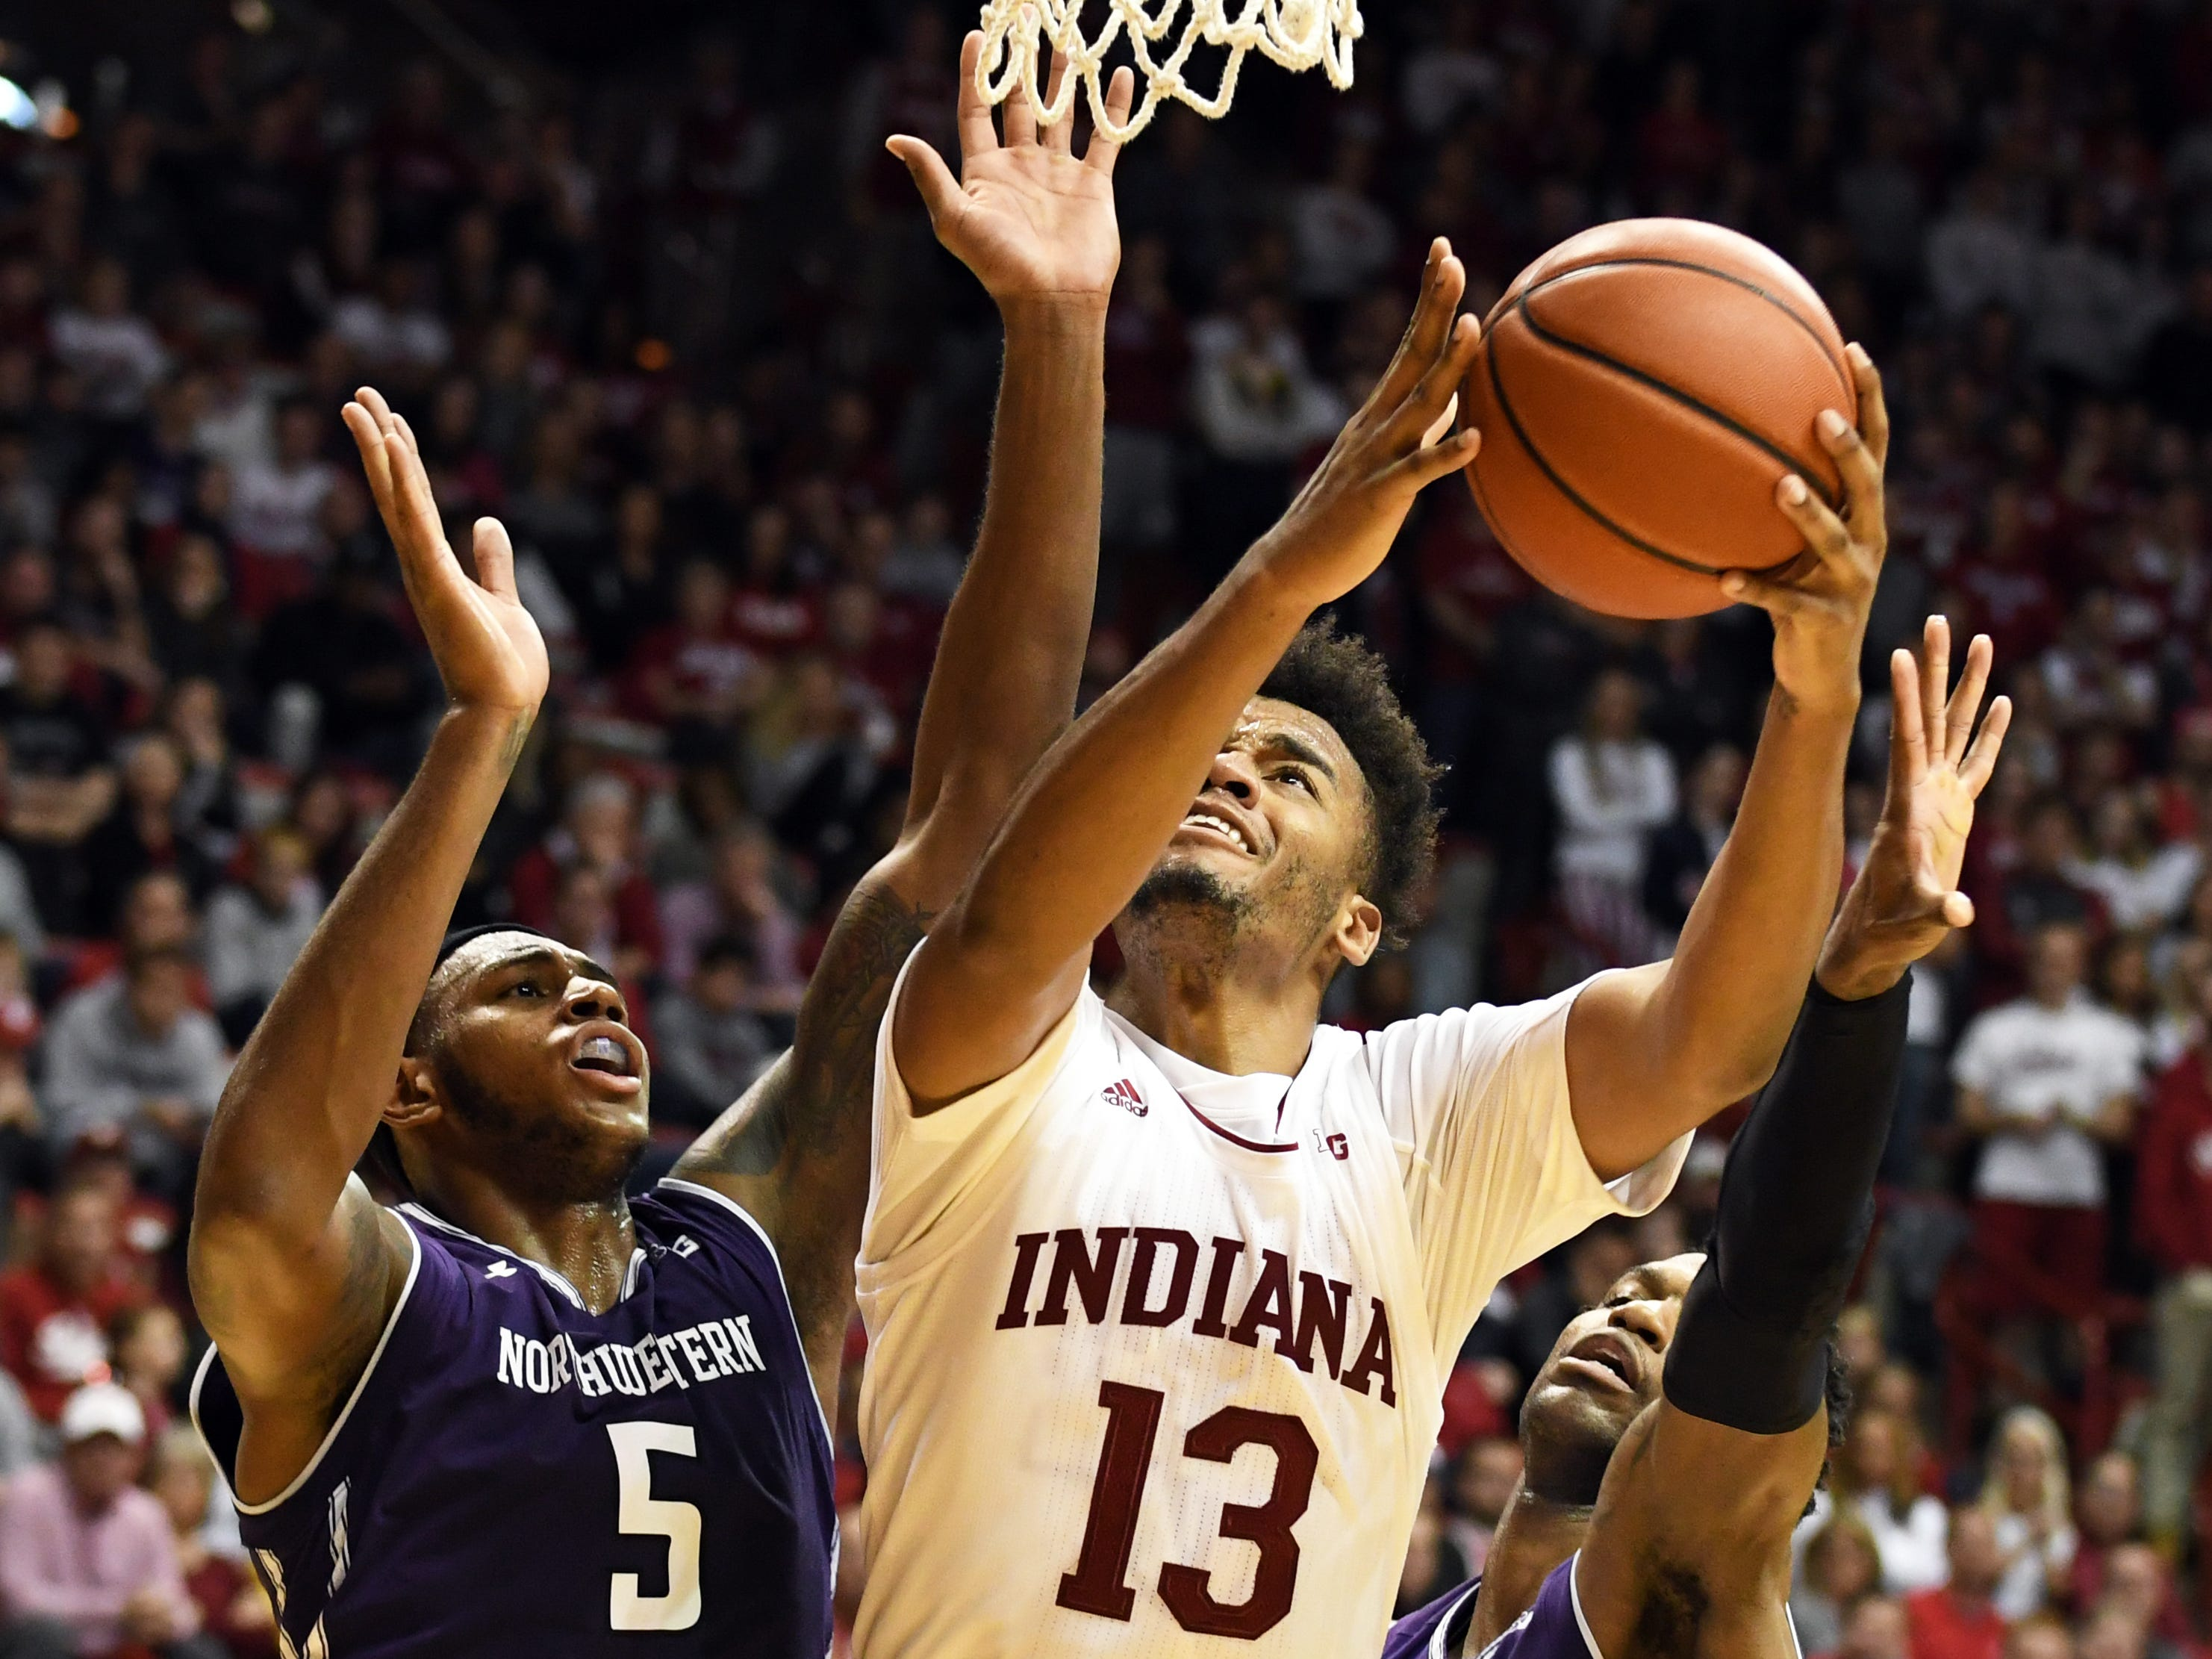 Indiana Hoosiers forward Juwan Morgan (13) attempts a layup during the game against Northwestern at Simon Skjodt Assembly Hall in Bloomington, Ind., on Saturday, Dec. 1, 2018.